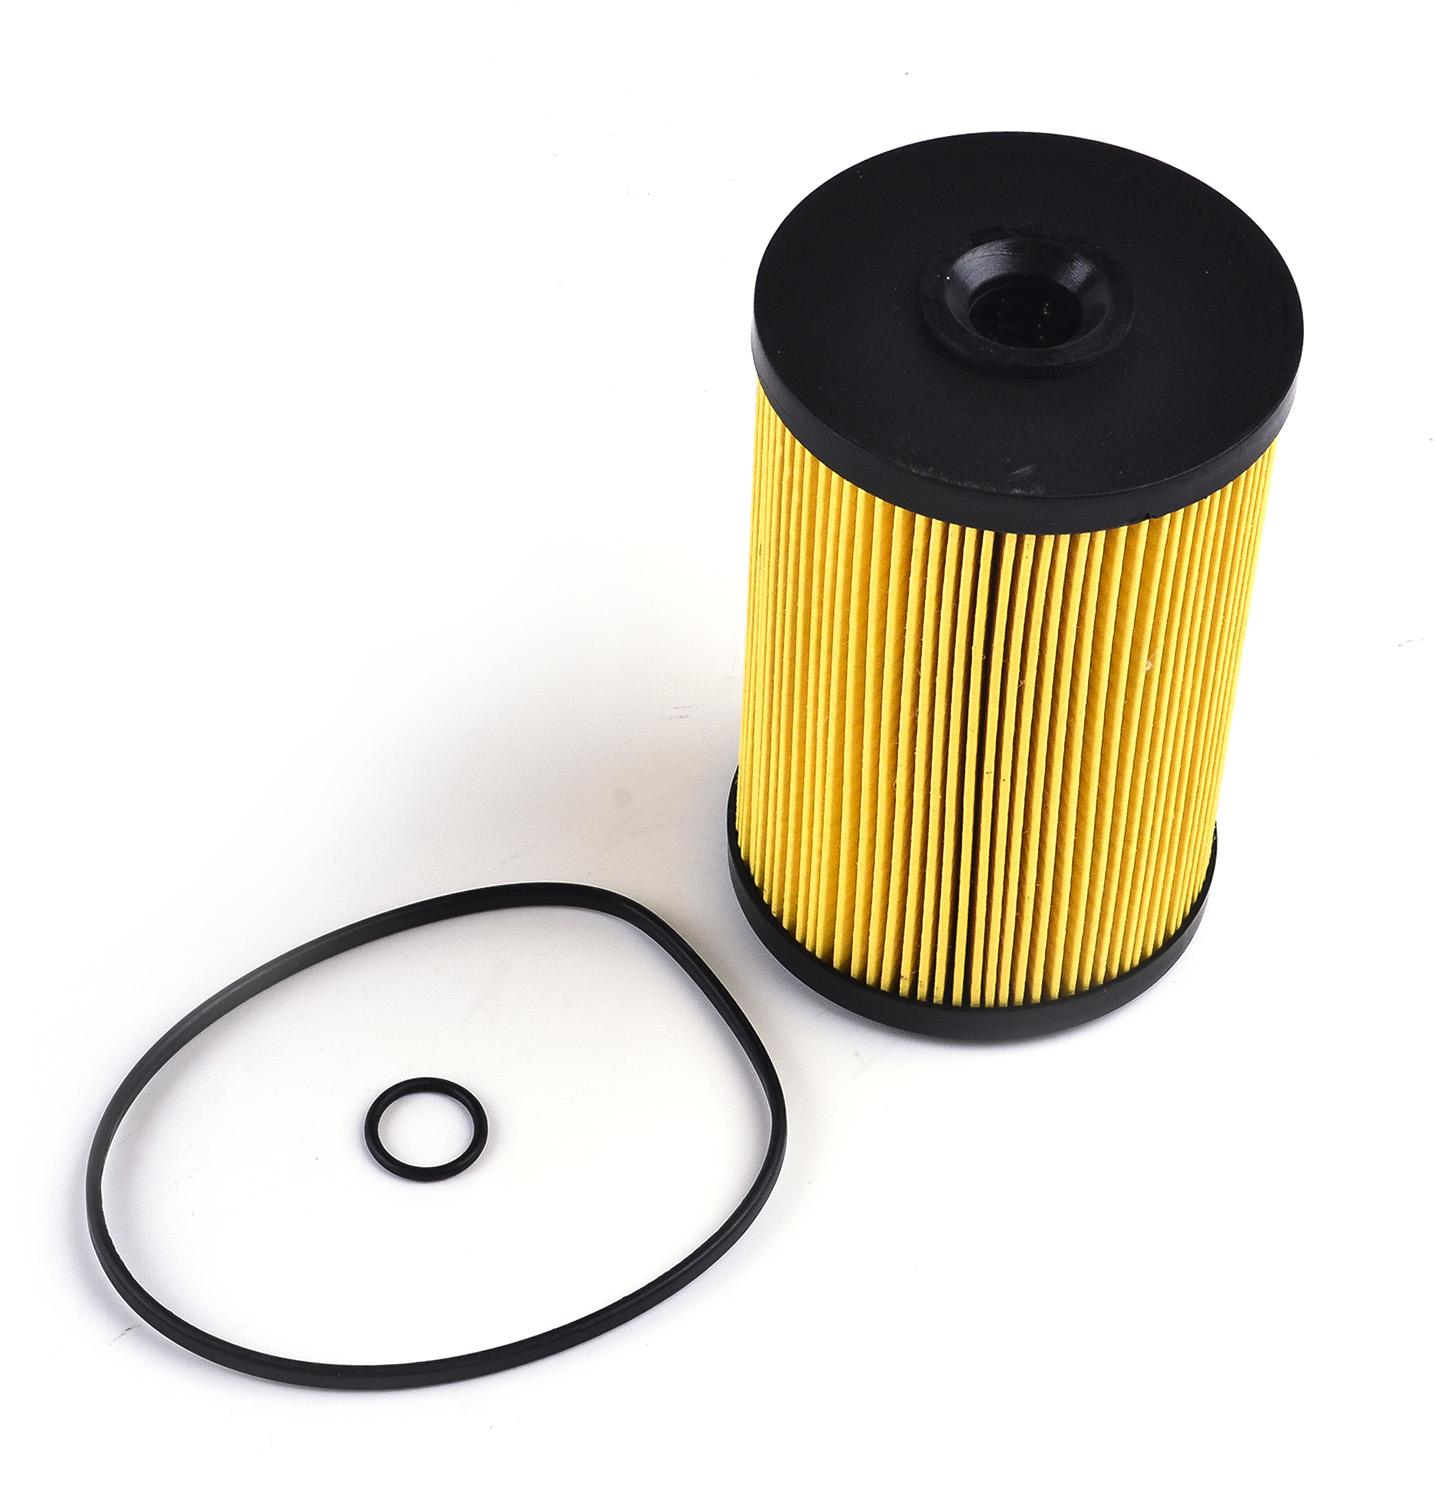 hight resolution of fe610j 19 55 fuel filter ss1e 05 fm1a 08 a09ct hino fuel filter r2644p 23401